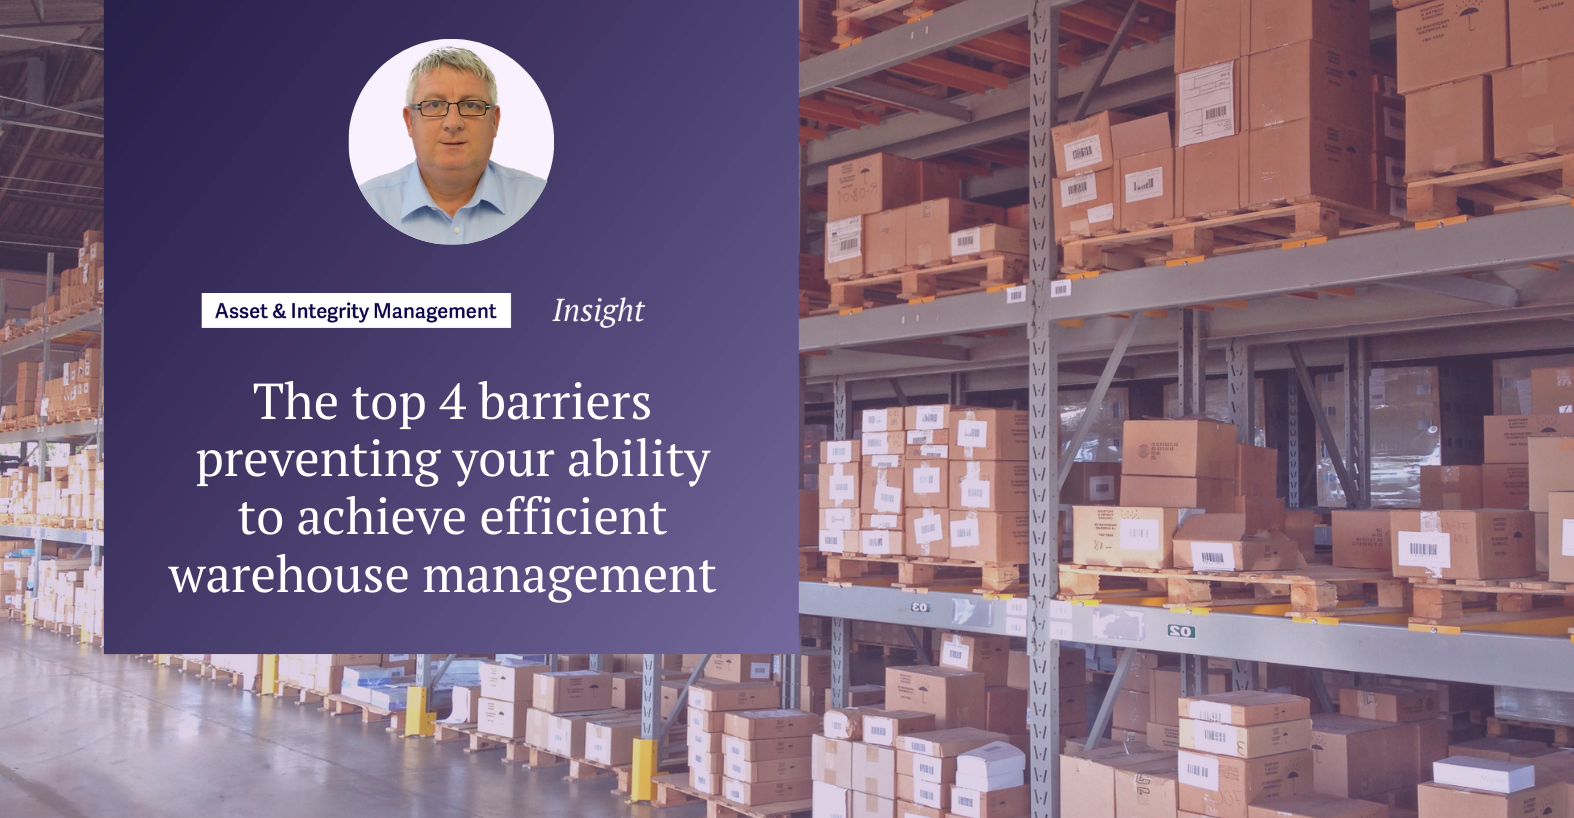 The top 4 barriers preventing your ability to achieveefficient warehouse management